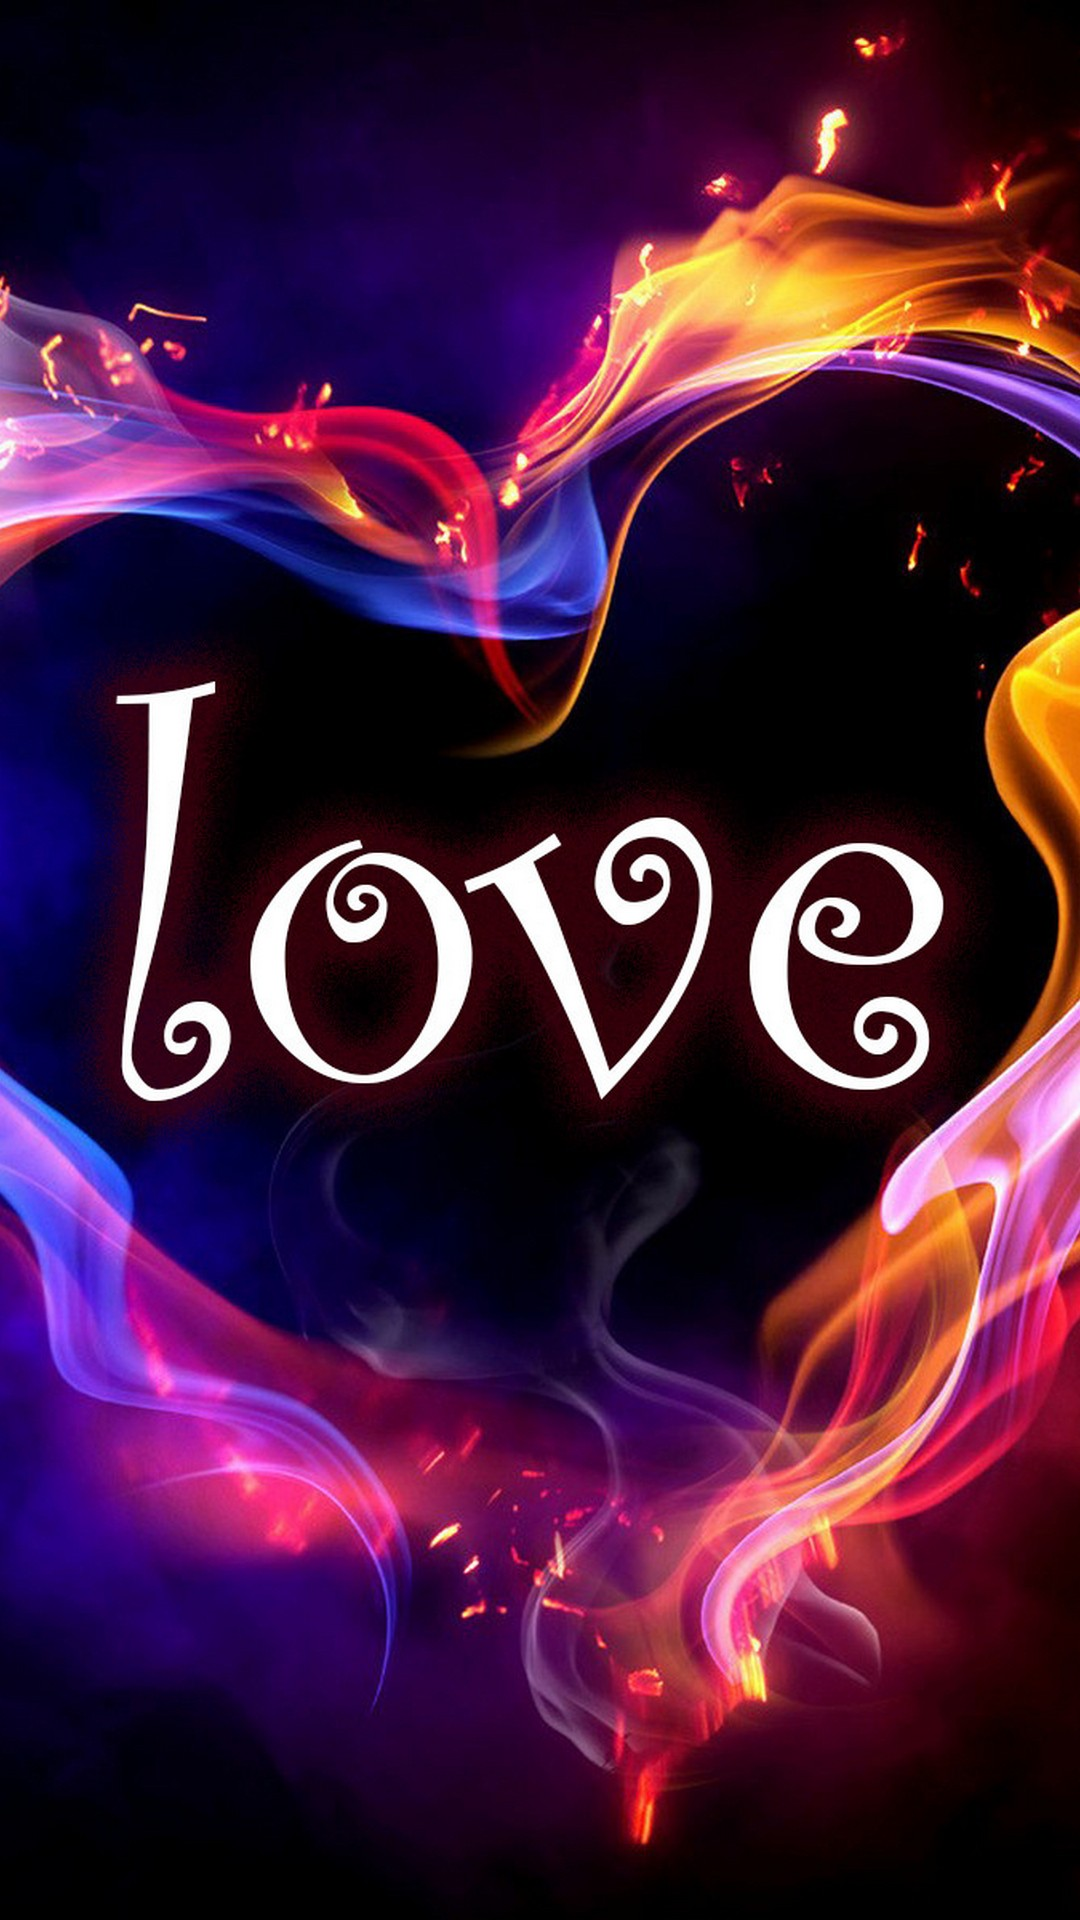 love hd wallpapers for